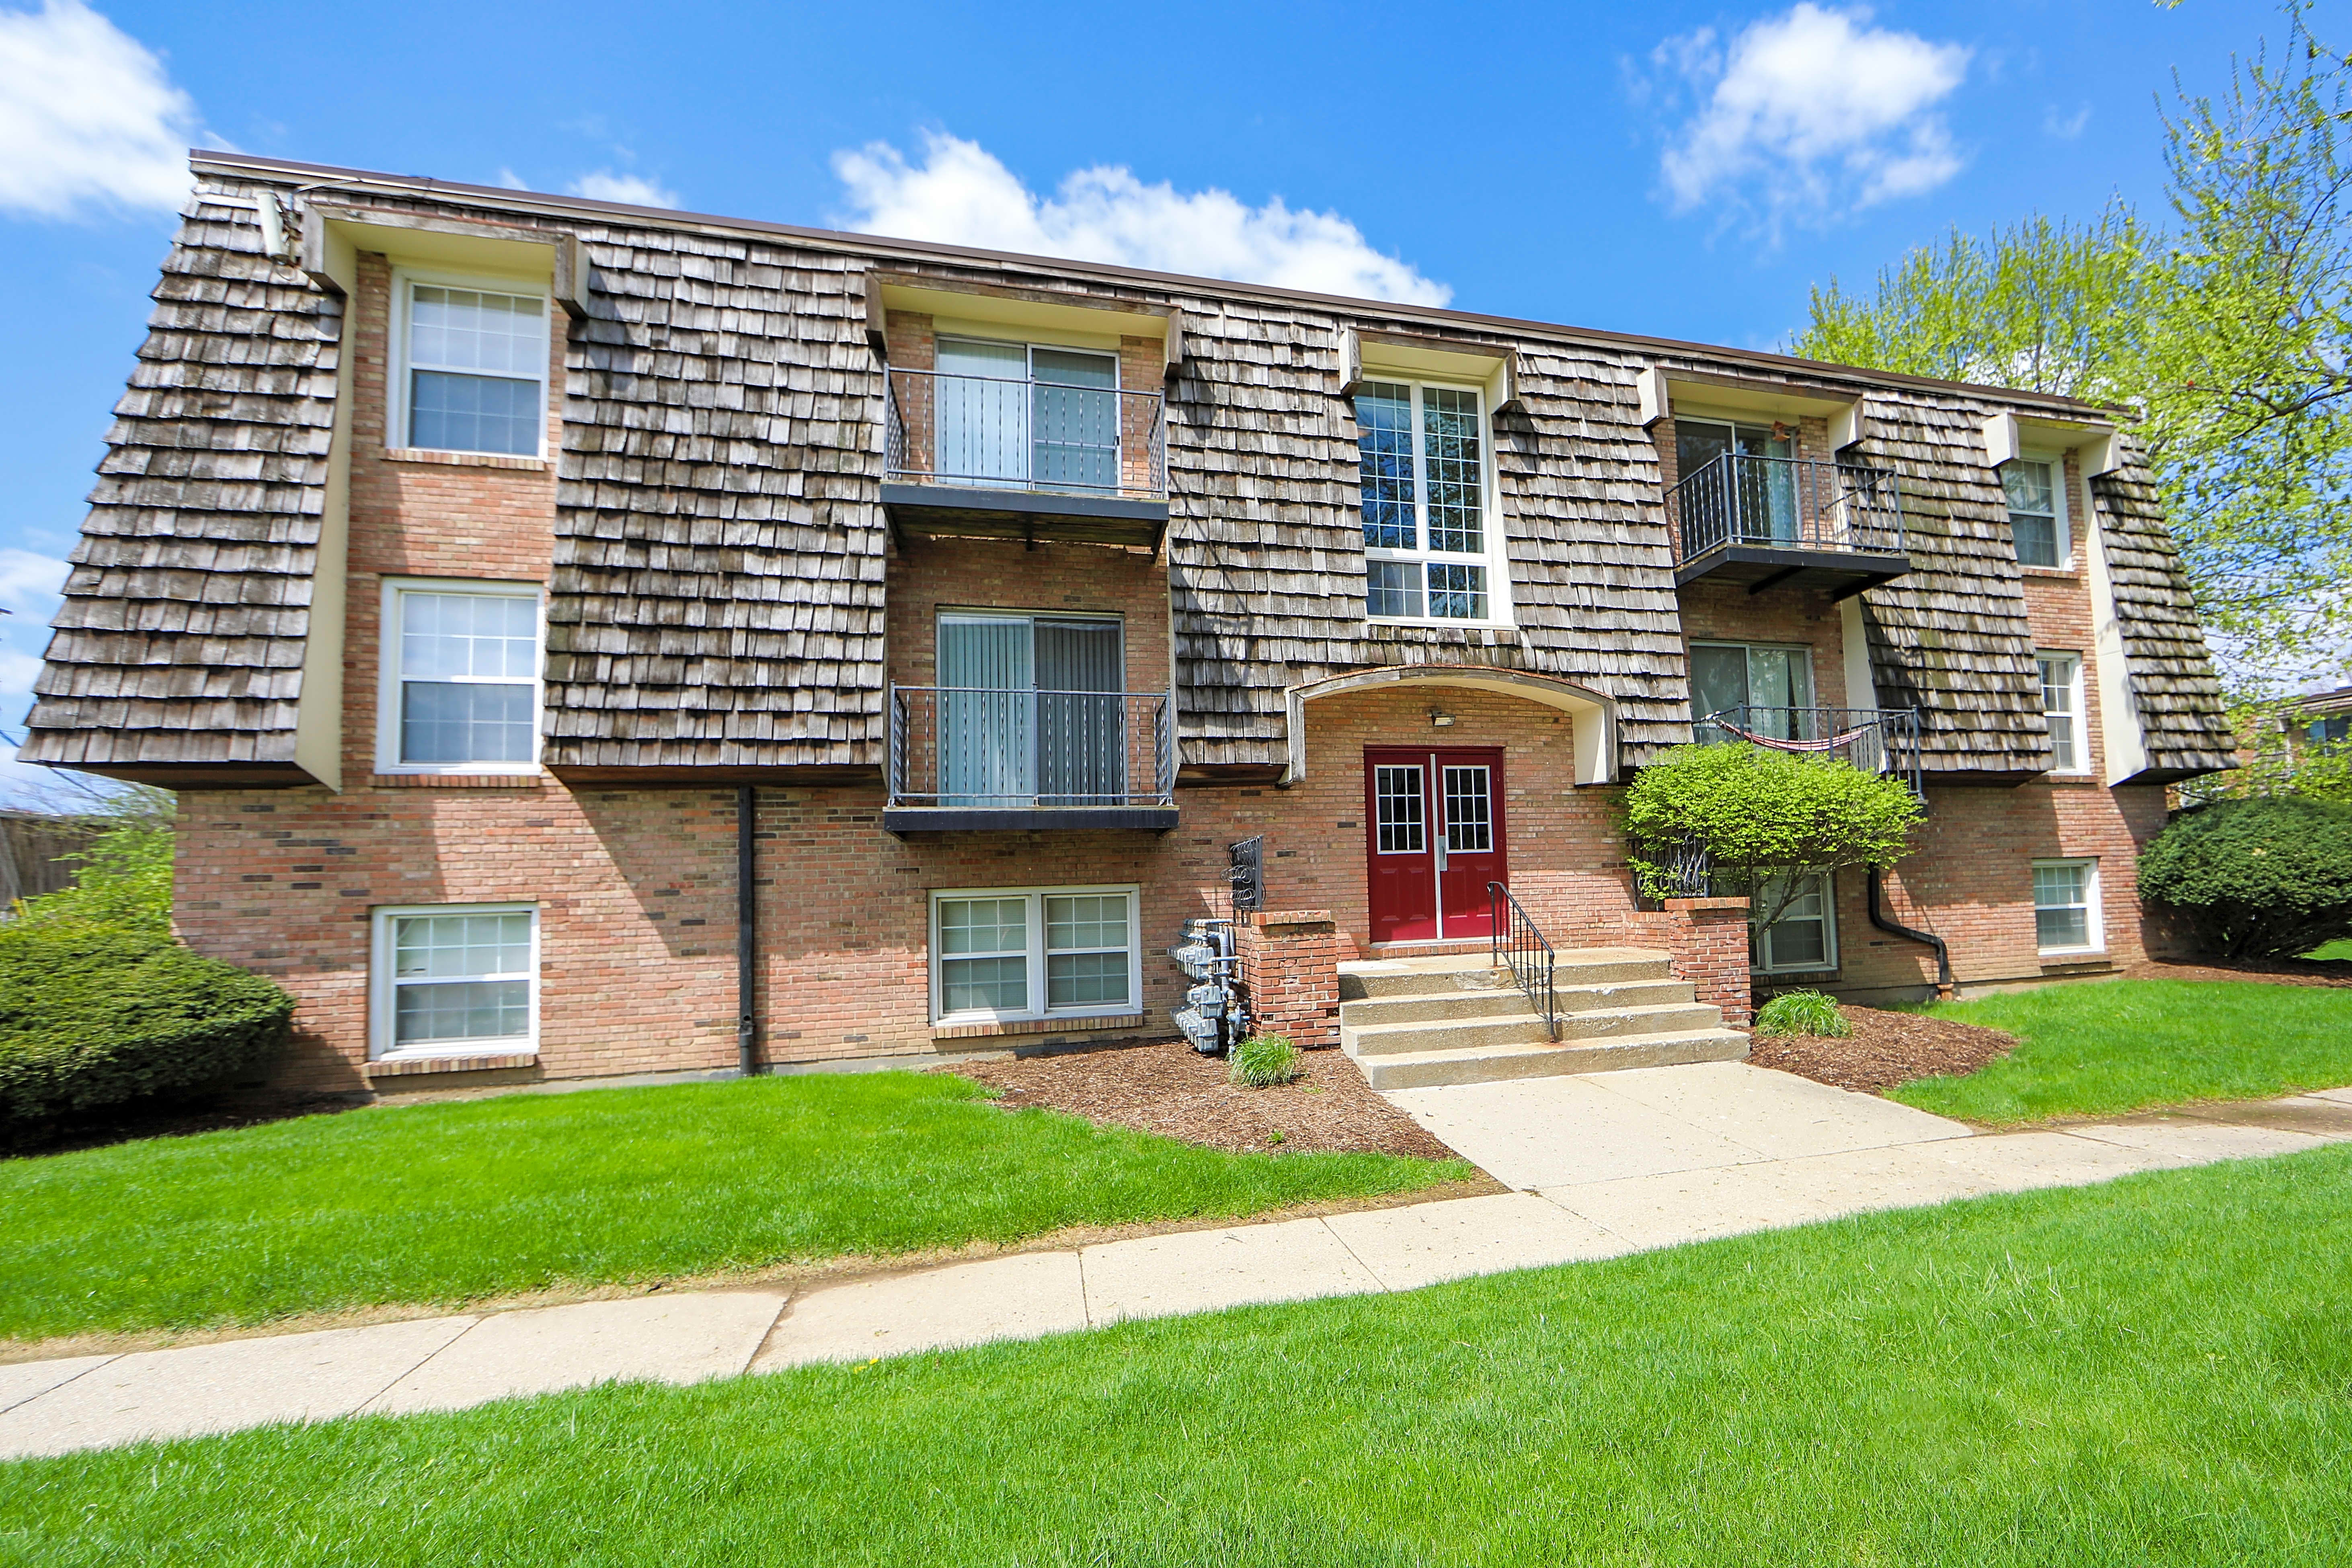 Apartments Near Tricoci University of Beauty Culture-Lafayette Beau Jardin for Tricoci University of Beauty Culture-Lafayette Students in Lafayette, IN